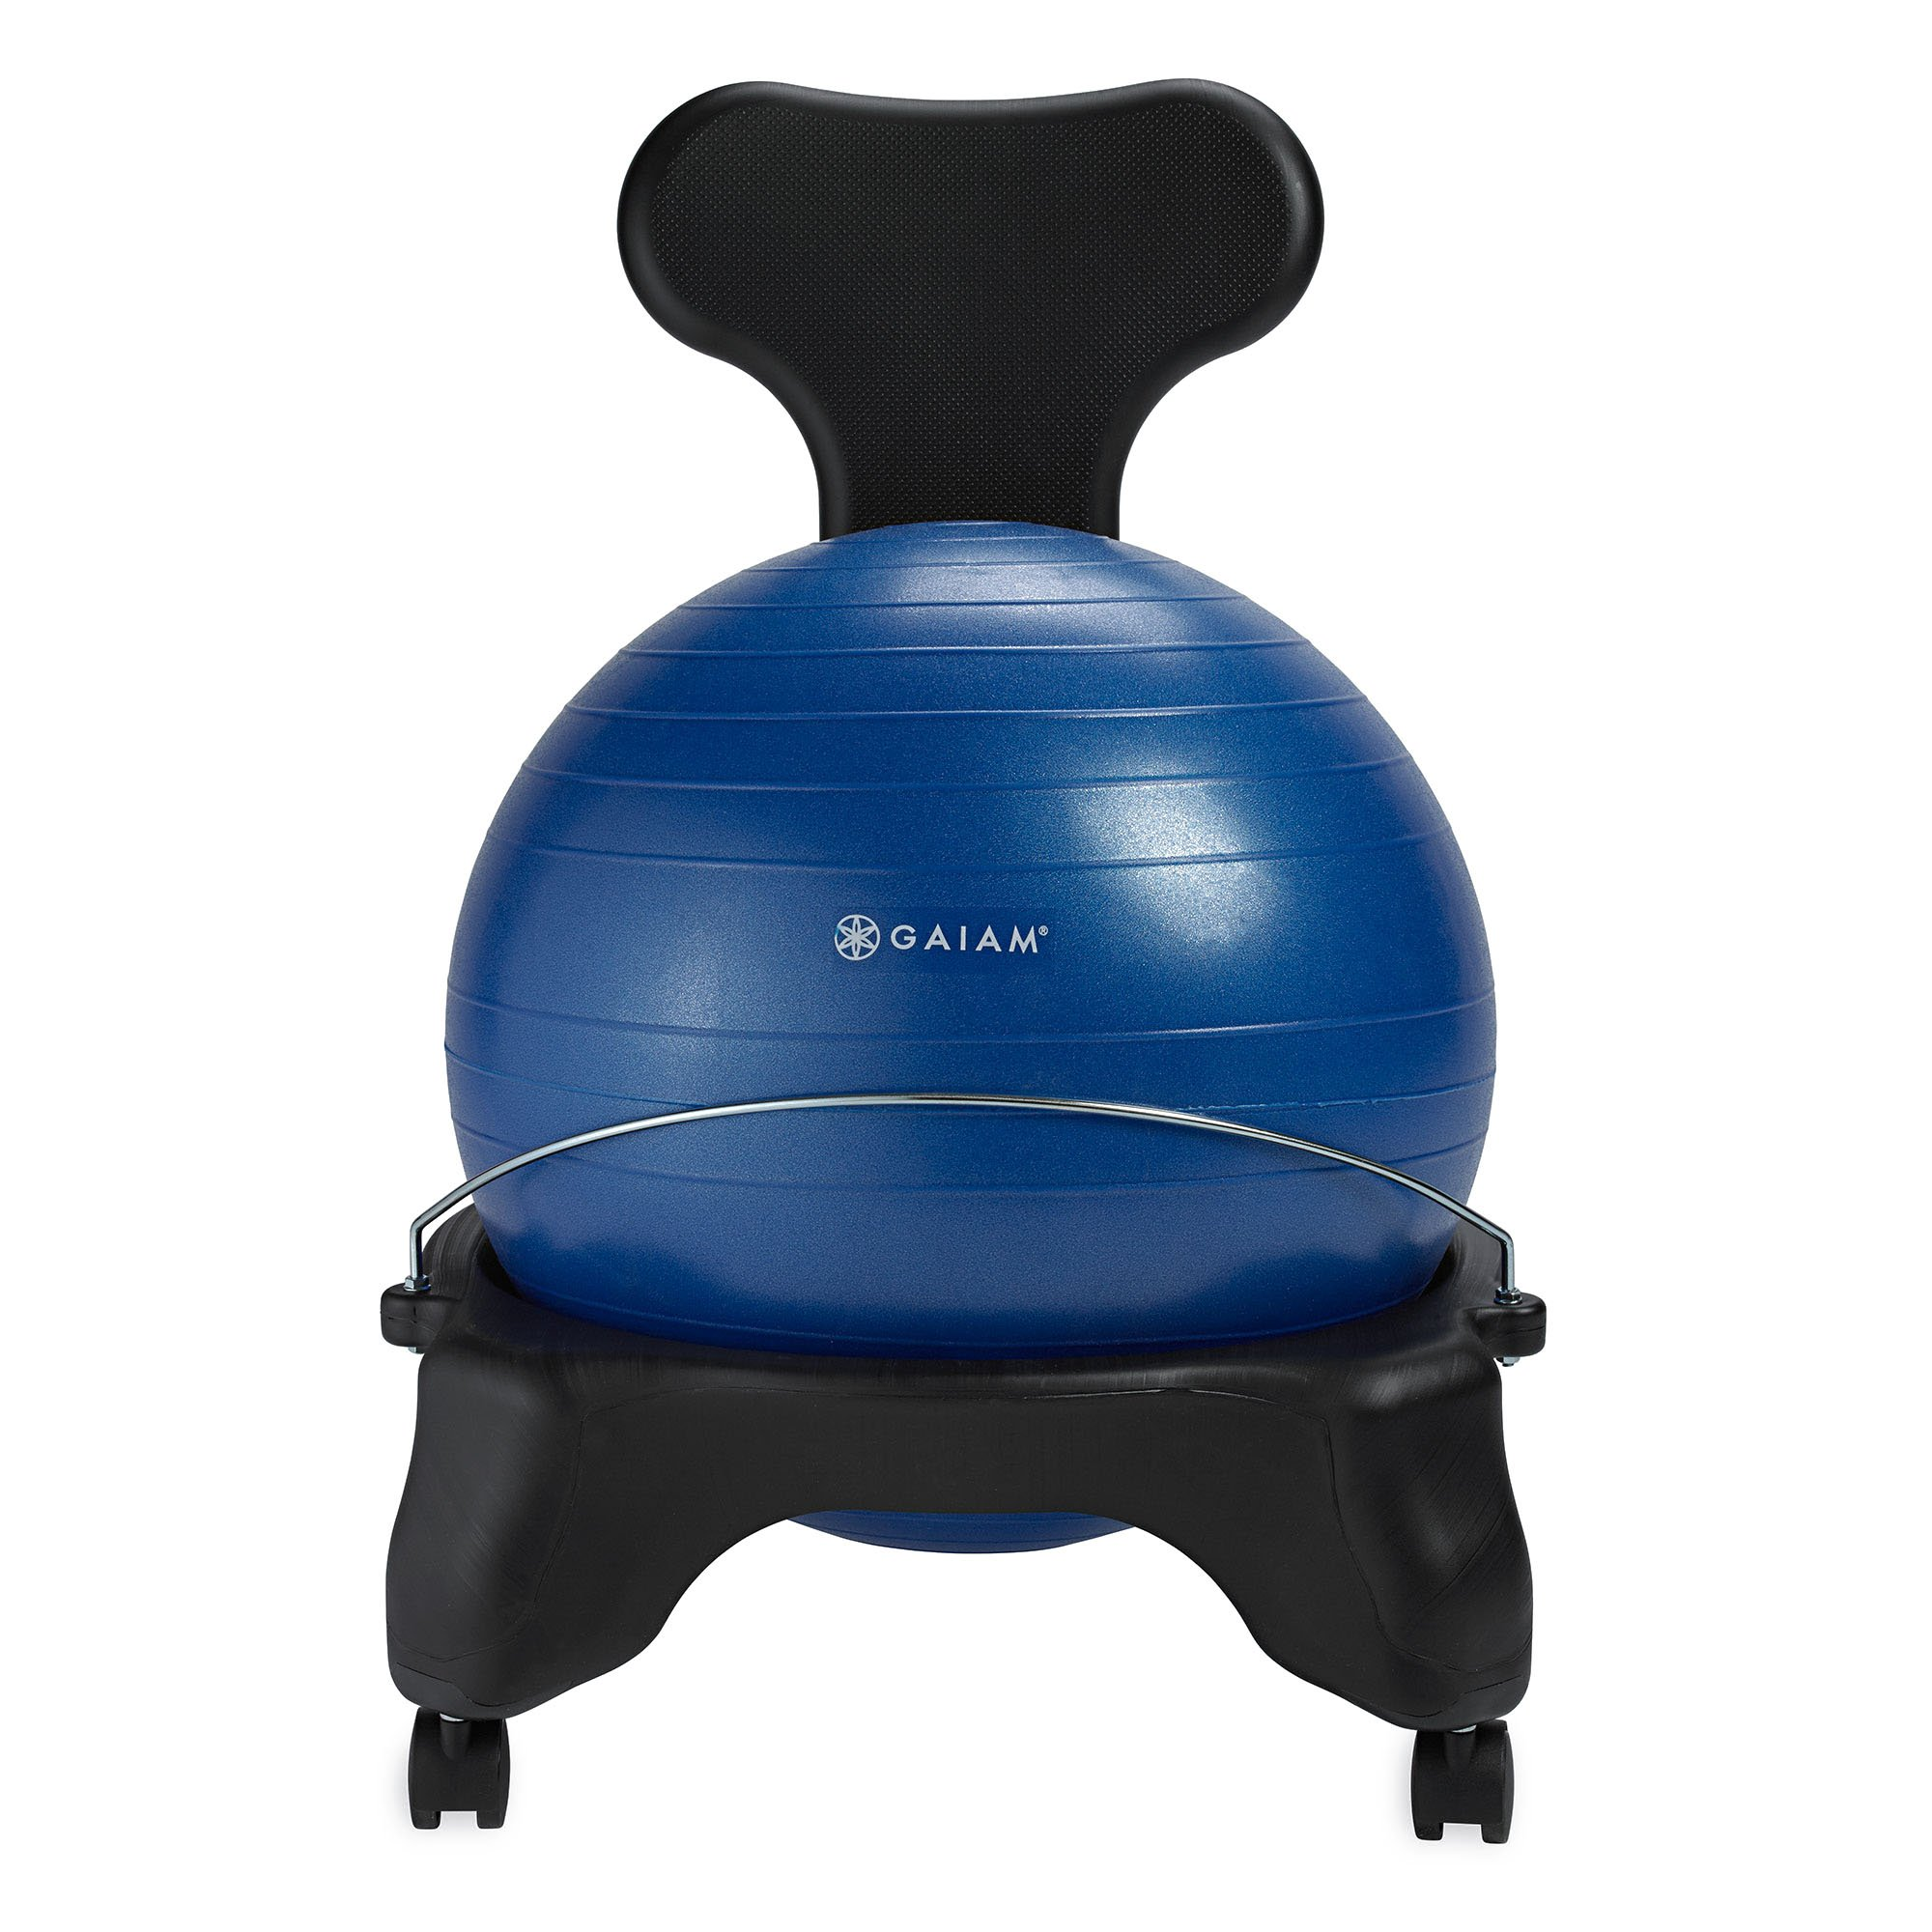 Gaiam Classic Balance Ball Chair – Exercise Stability Yoga Ball Premium Ergonomic Chair for Home and Office Desk with Air Pump, Exercise Guide and Satisfaction Guarantee, Blue by Gaiam (Image #8)